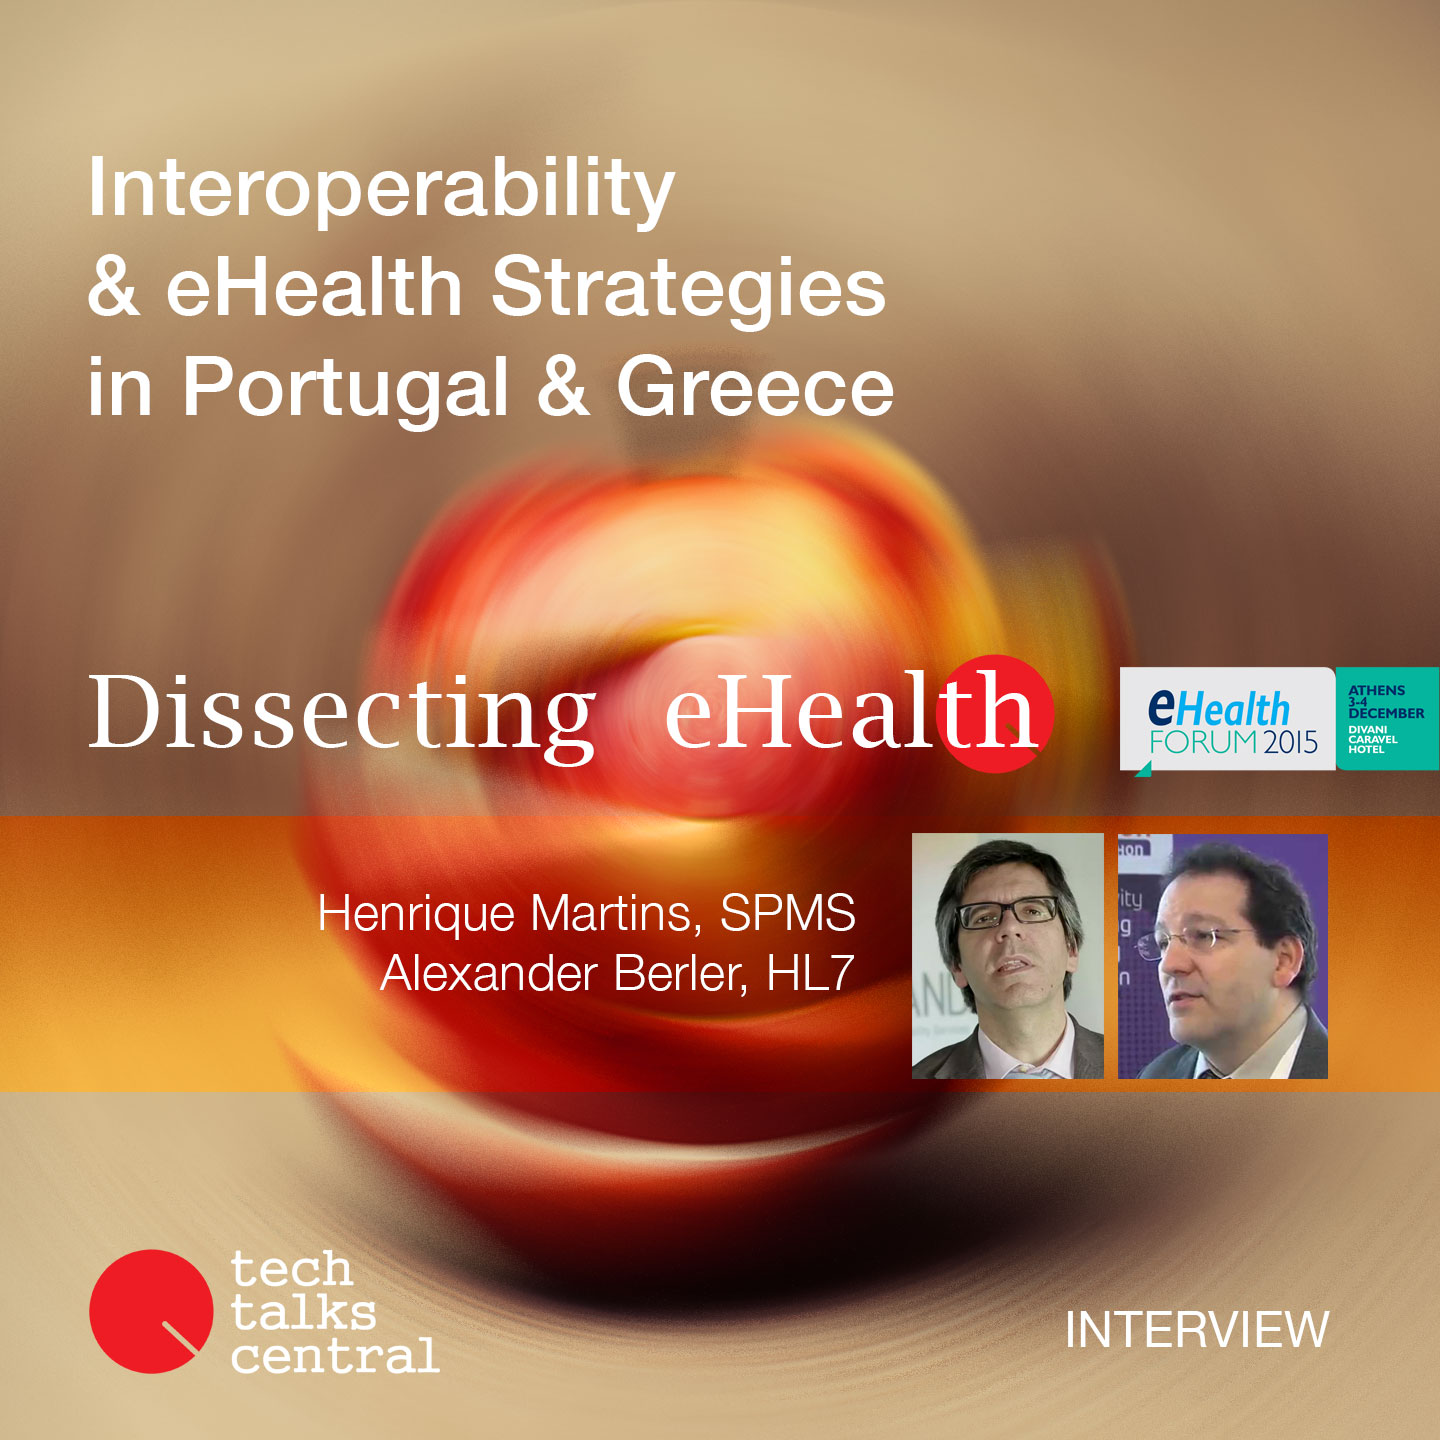 Interoperability & eHealth Strategies in Portugal & Greece